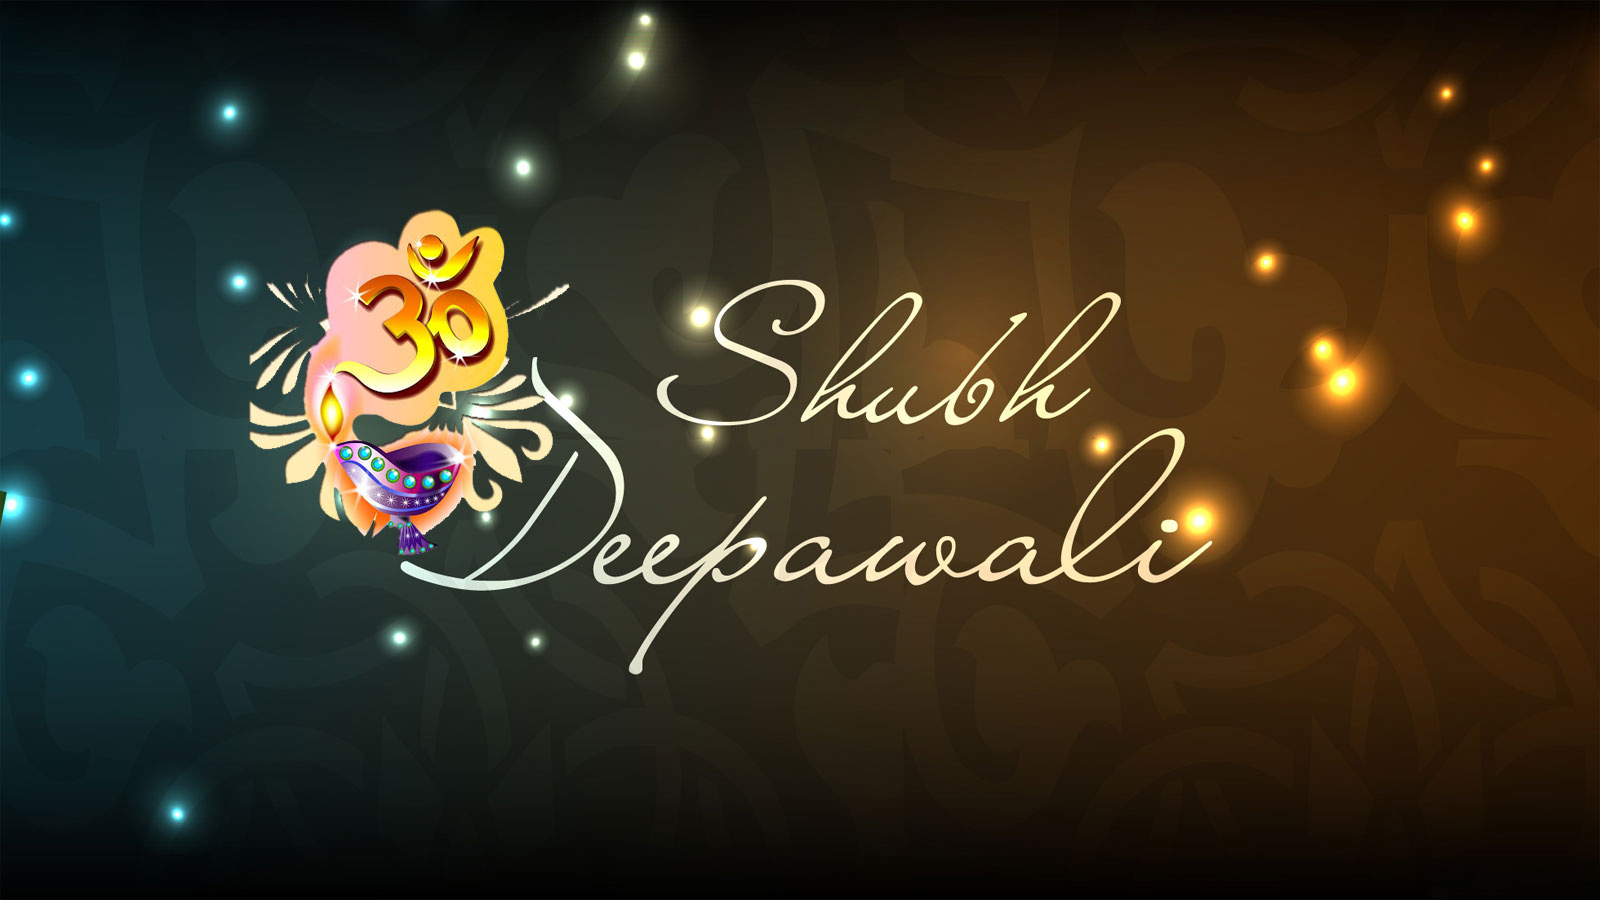 Diwali images archives only messages diwali images of the festival wallpapers free download m4hsunfo